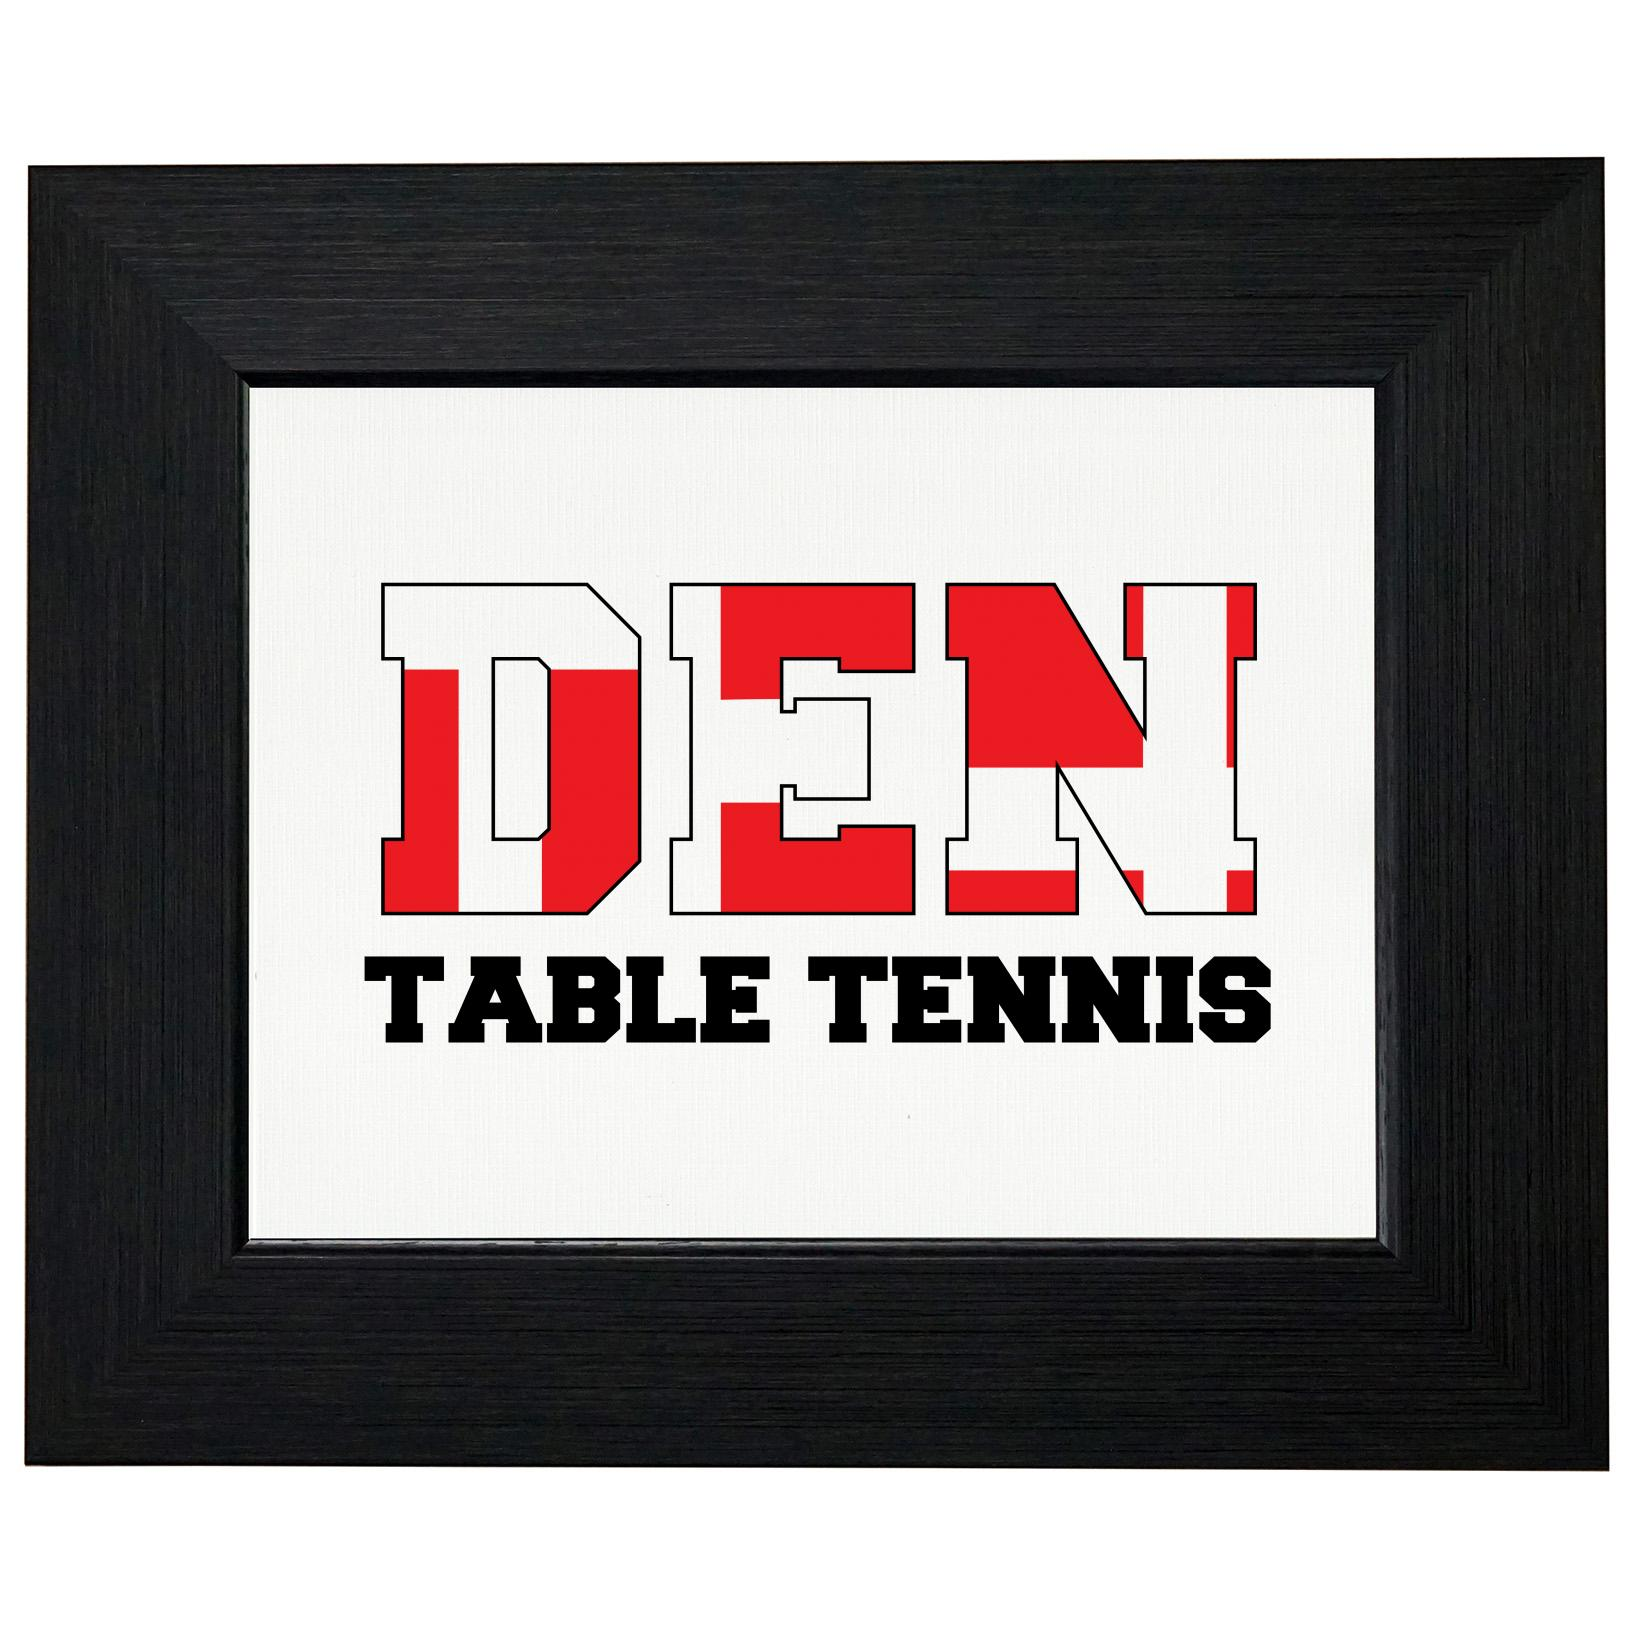 Denmark Ping Pong Olympic Games Rio Flag Framed Print Poster Wall or Desk Mount Options by Royal Prints